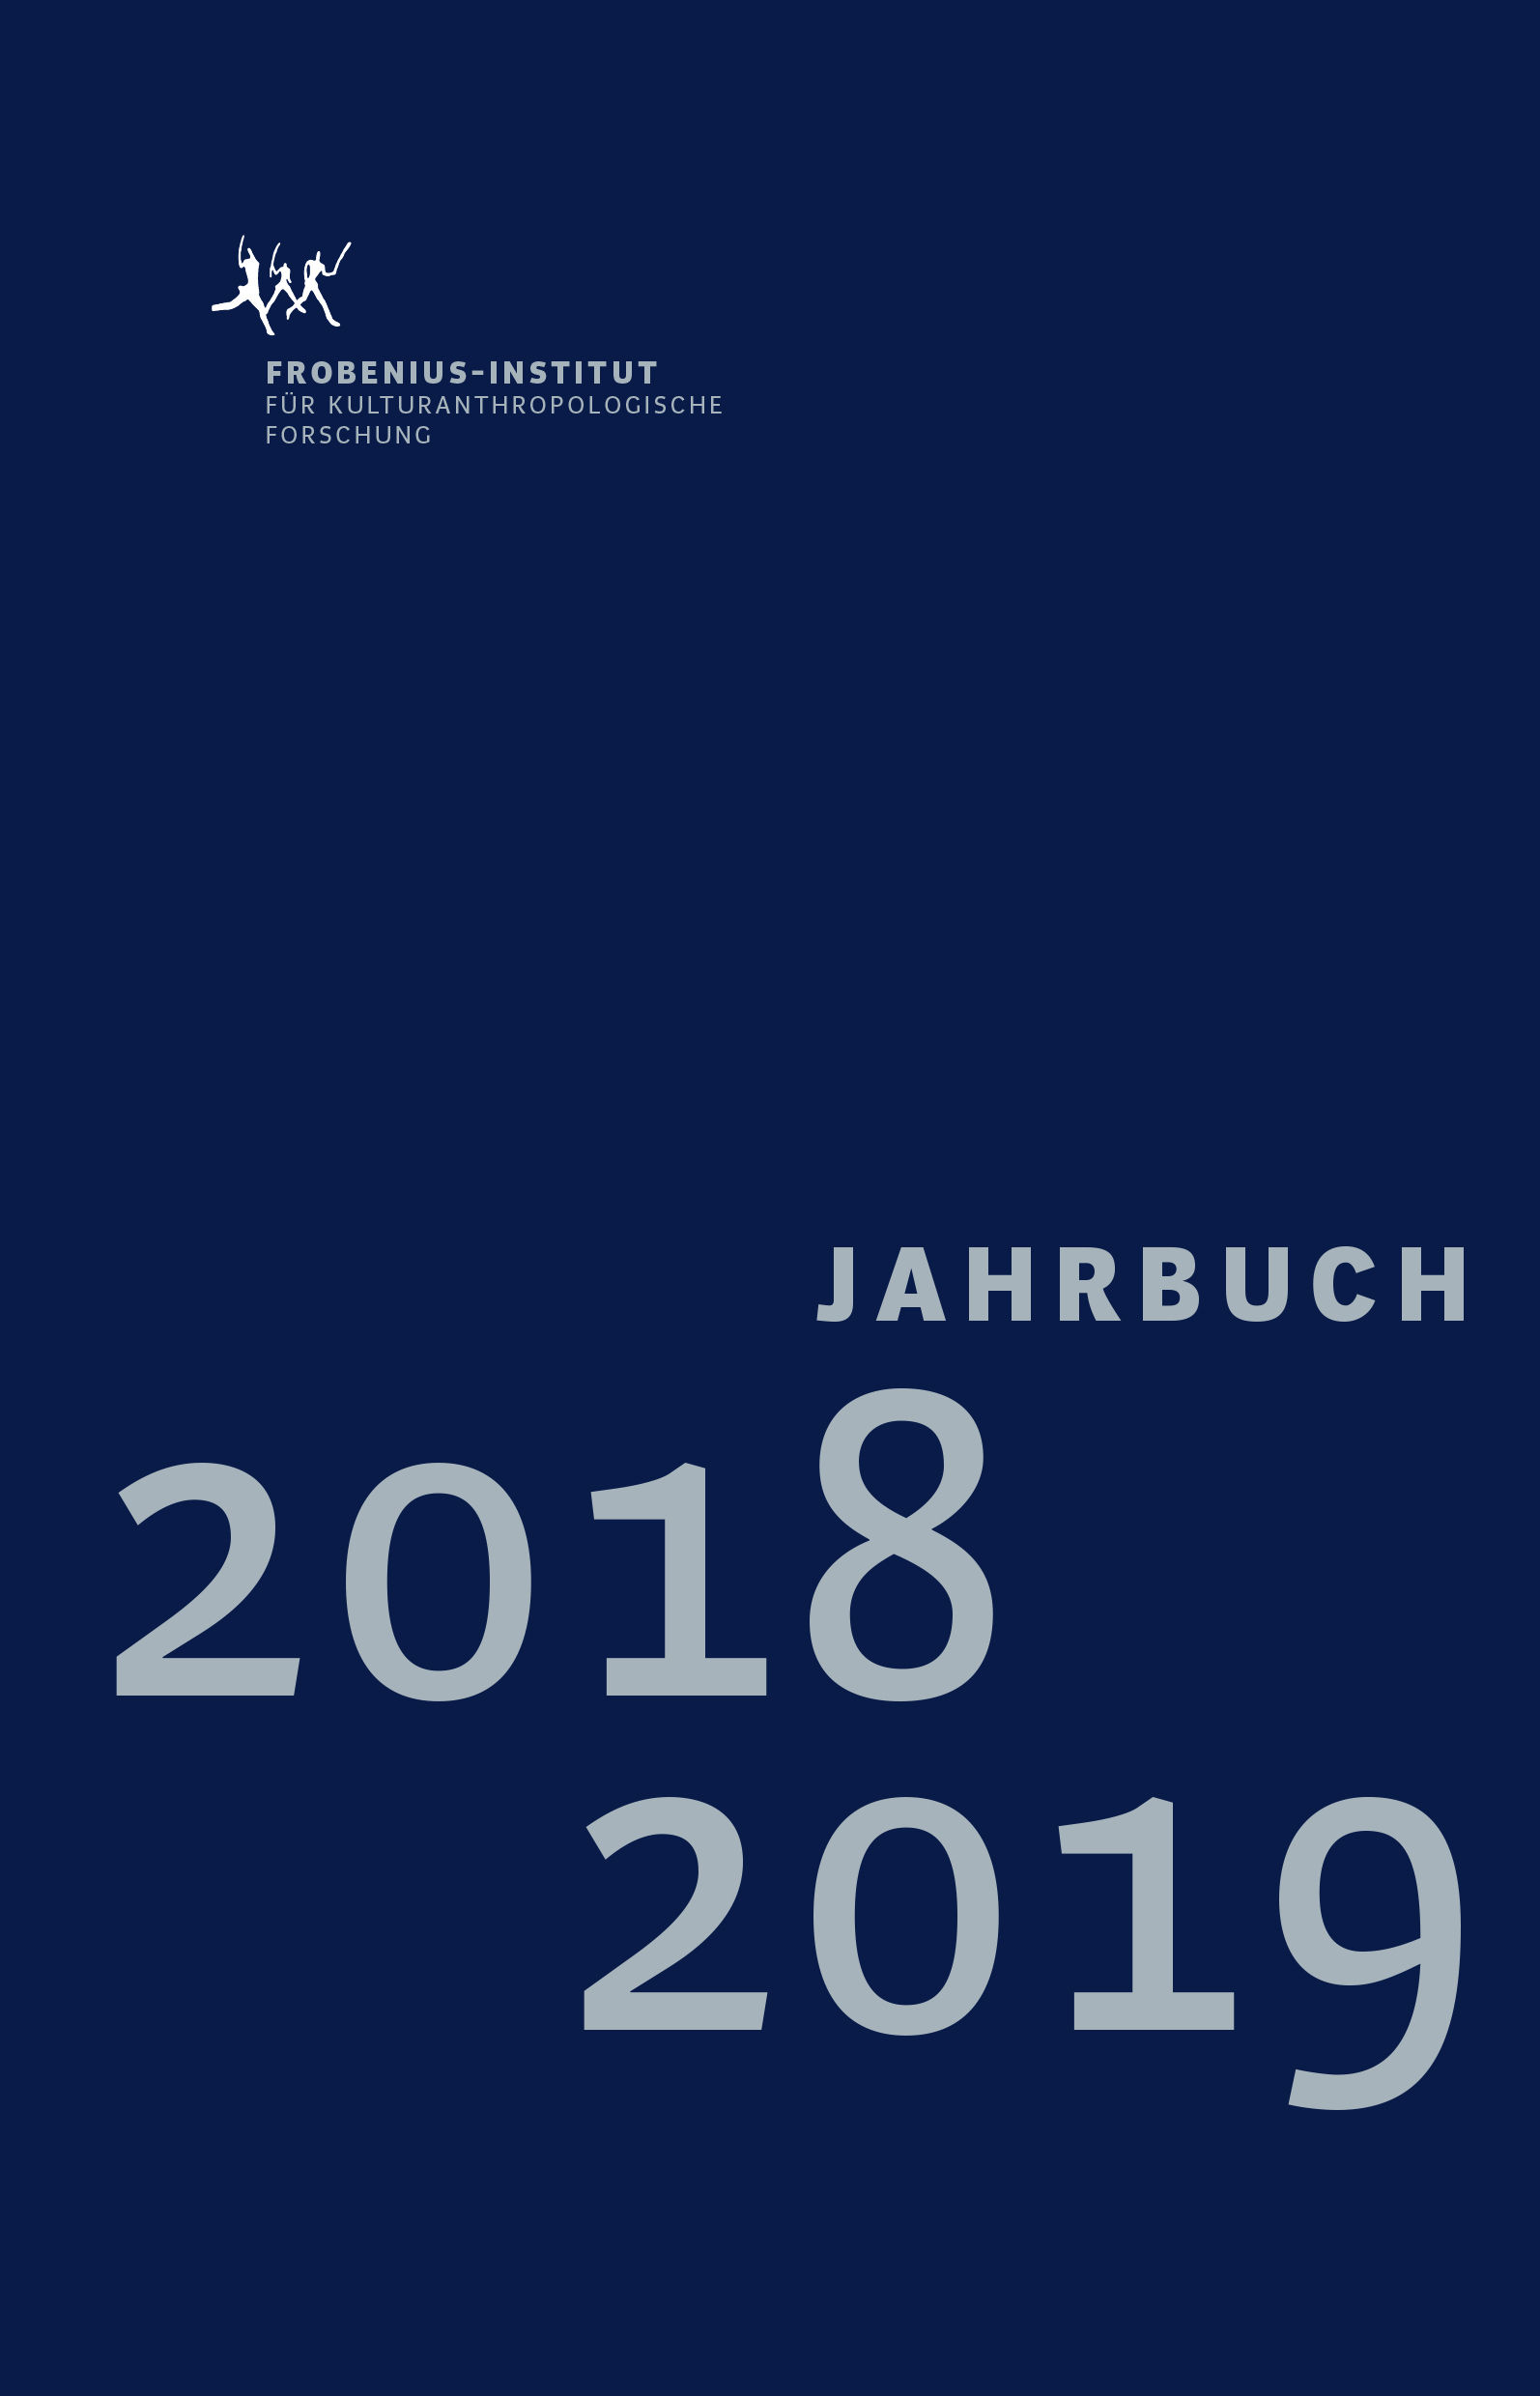 frob jahrbuch2019 cover